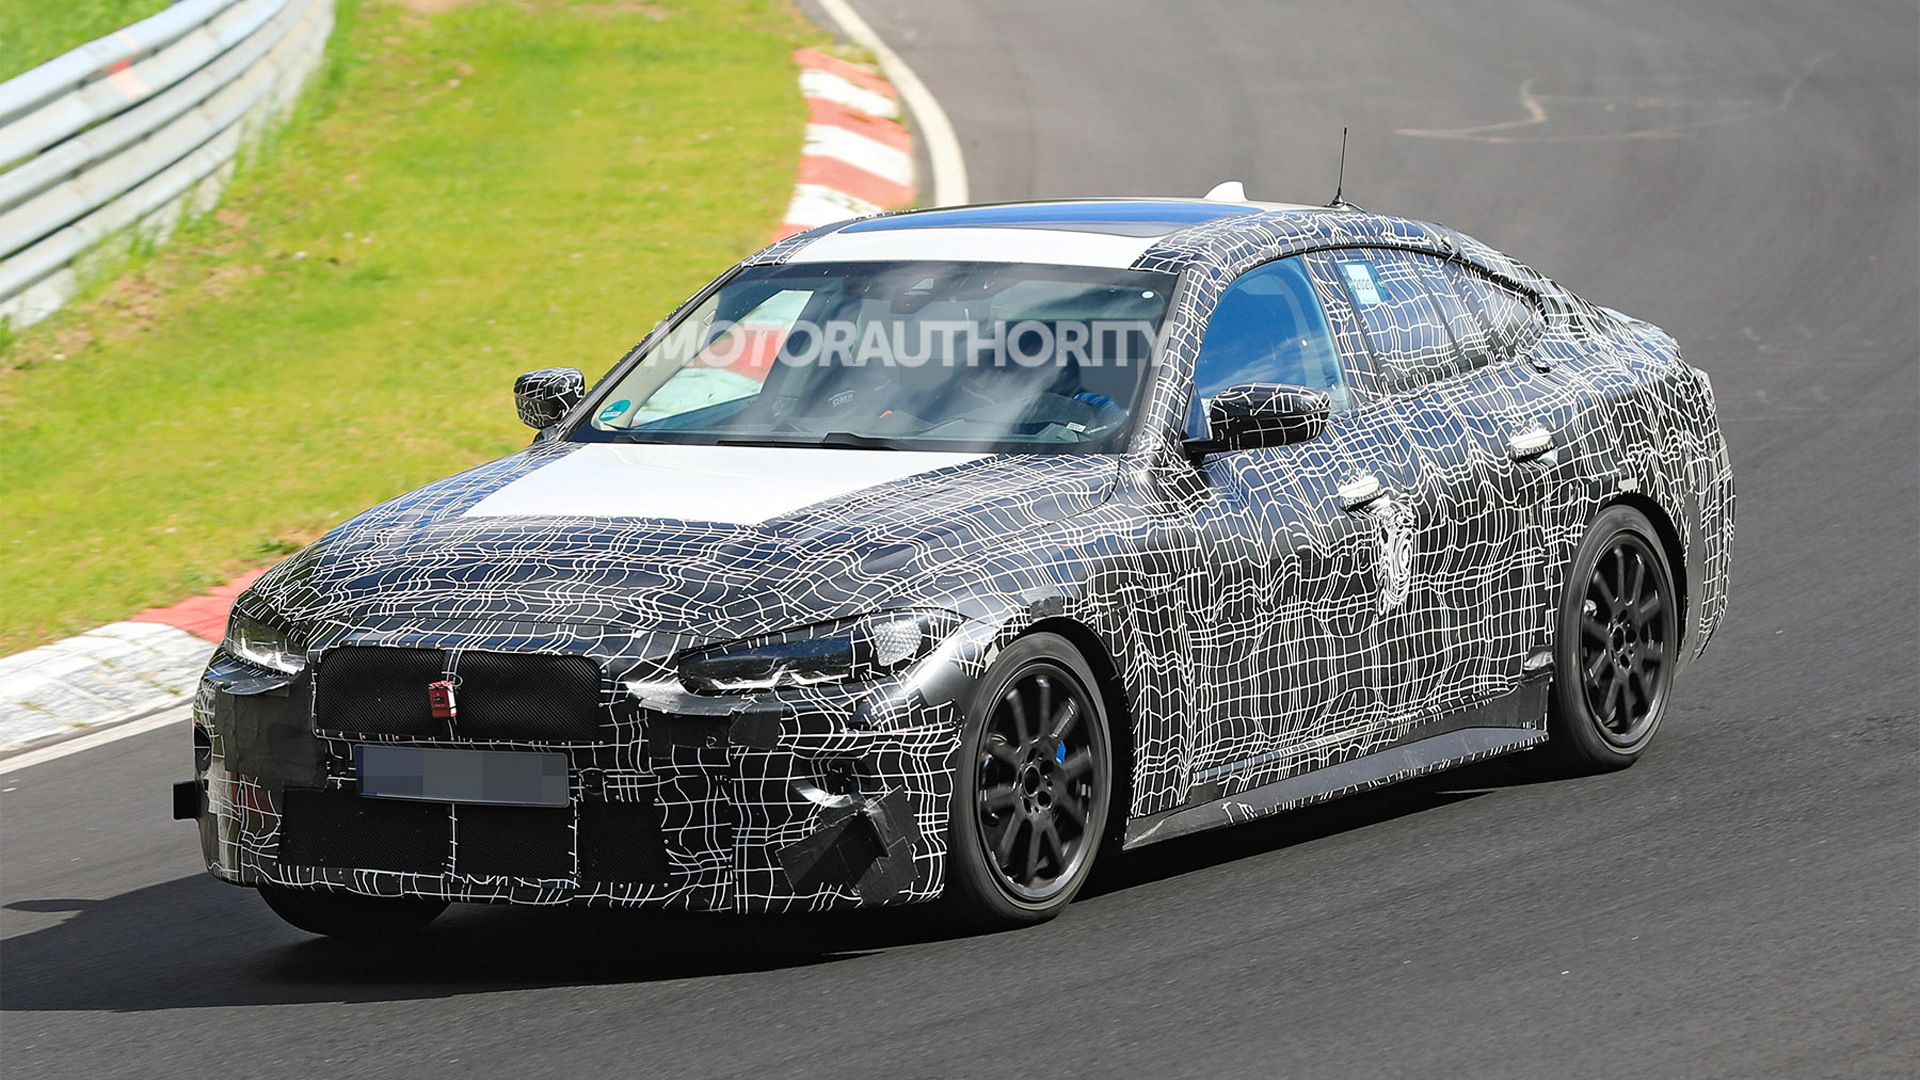 2022 BMW 4-Series Gran Coupe spy shots - Photo credit: S. Baldauf/SB-Medien